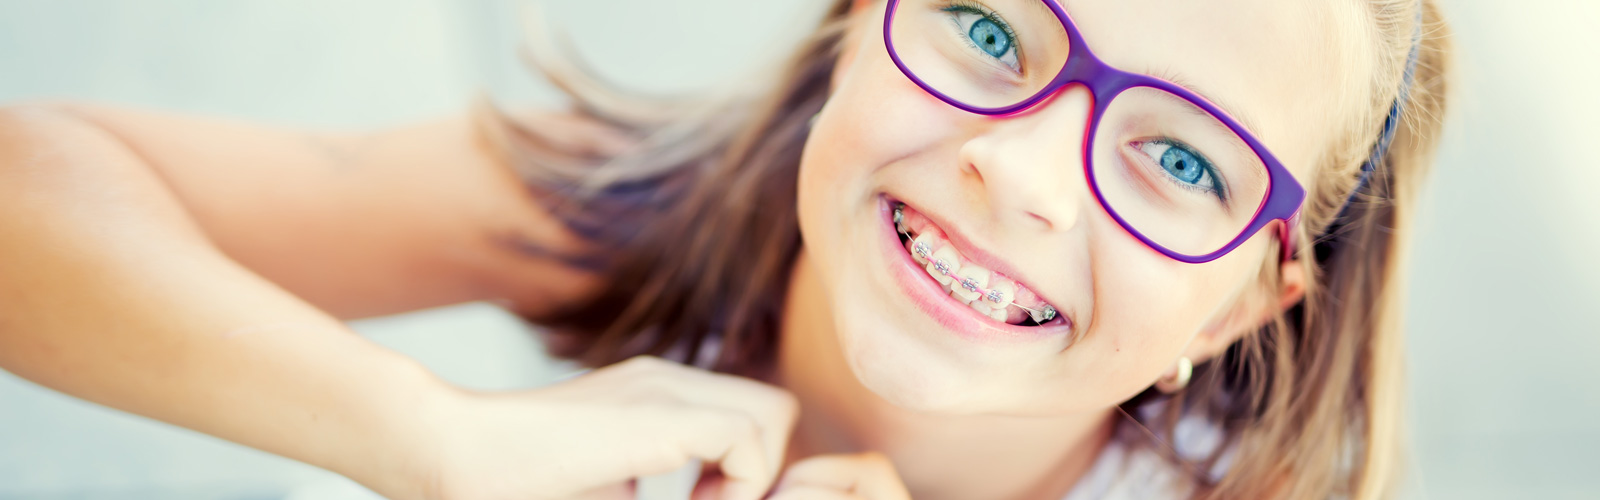 Smiling little girl with braces